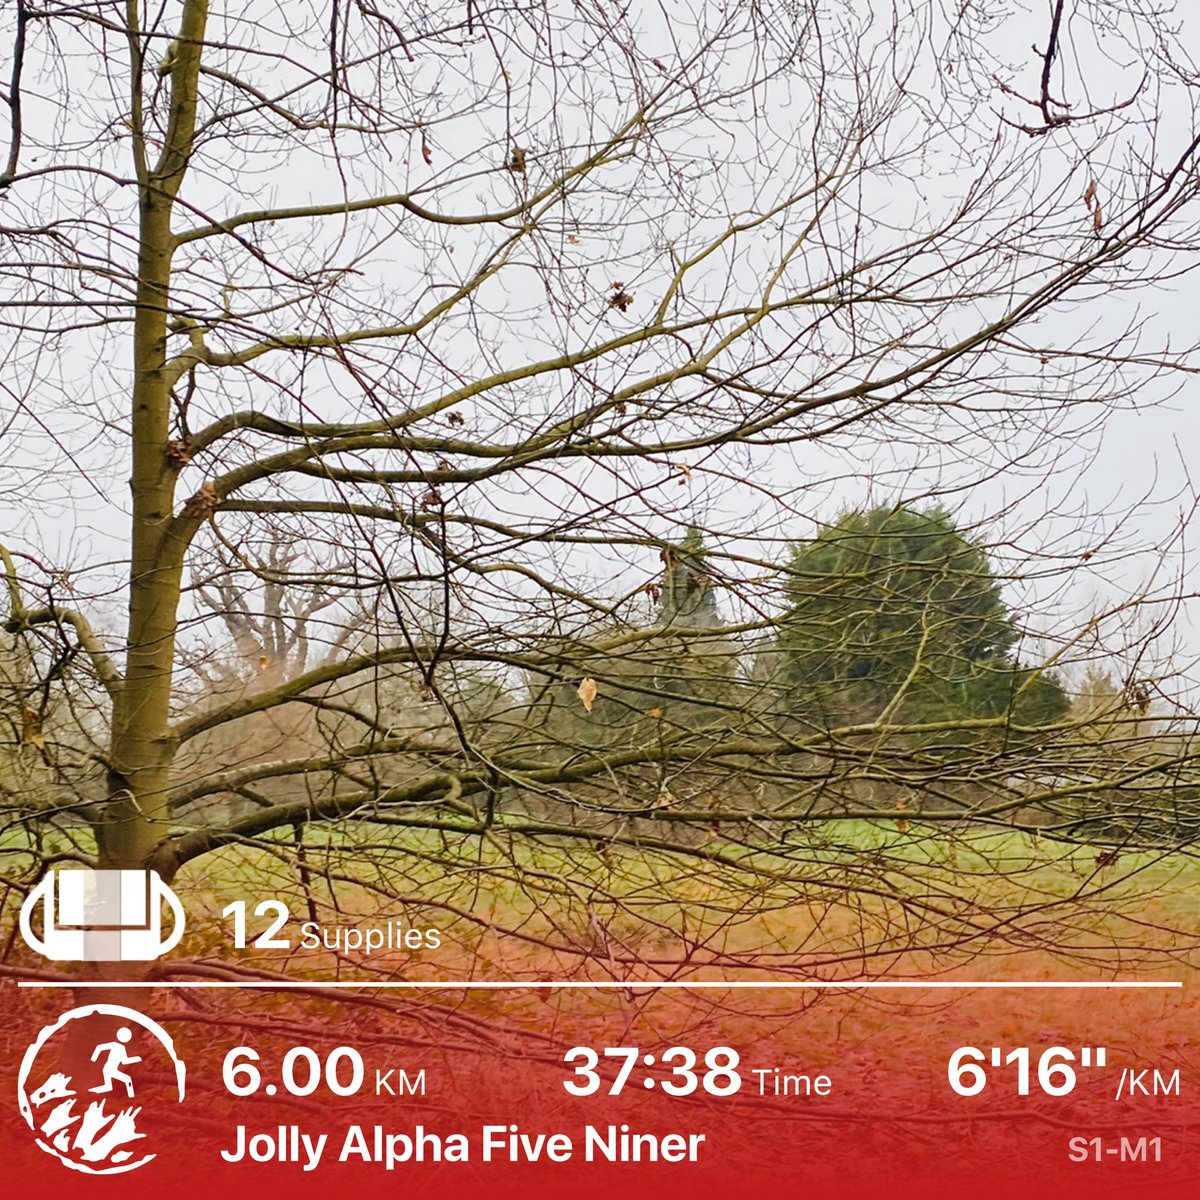 THIS IS SO MUCH FUN! #running Survived rocket launcher attack on our helo. Evaded zombies, made it to Abel Township #zombiesrun pic.twitter.com/W46ltd05nd